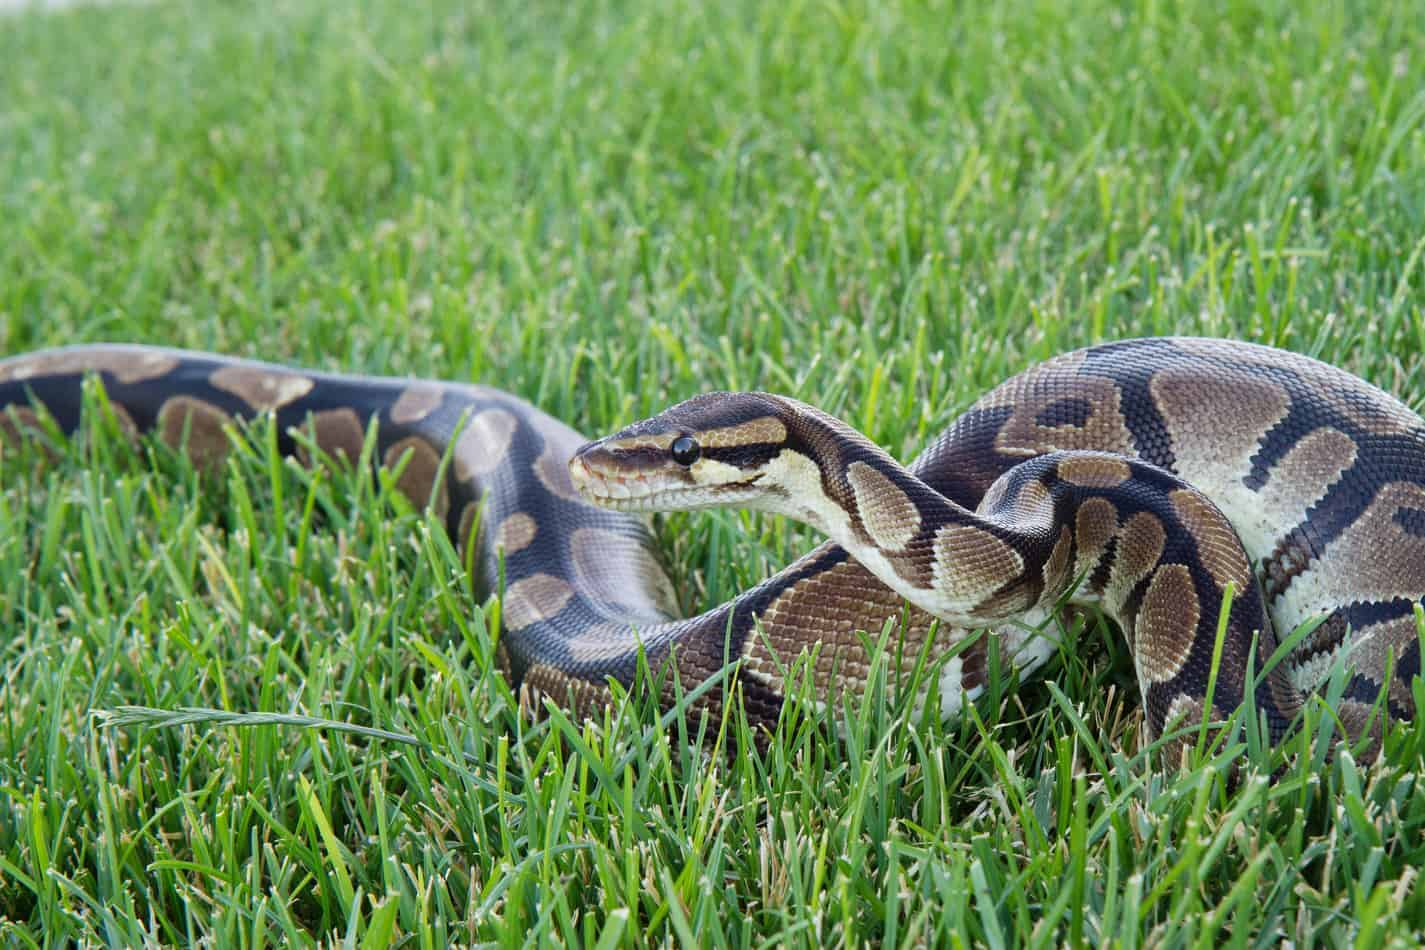 How Big Do Ball Pythons Get (And How Long Does it Take for Them to Grow)?